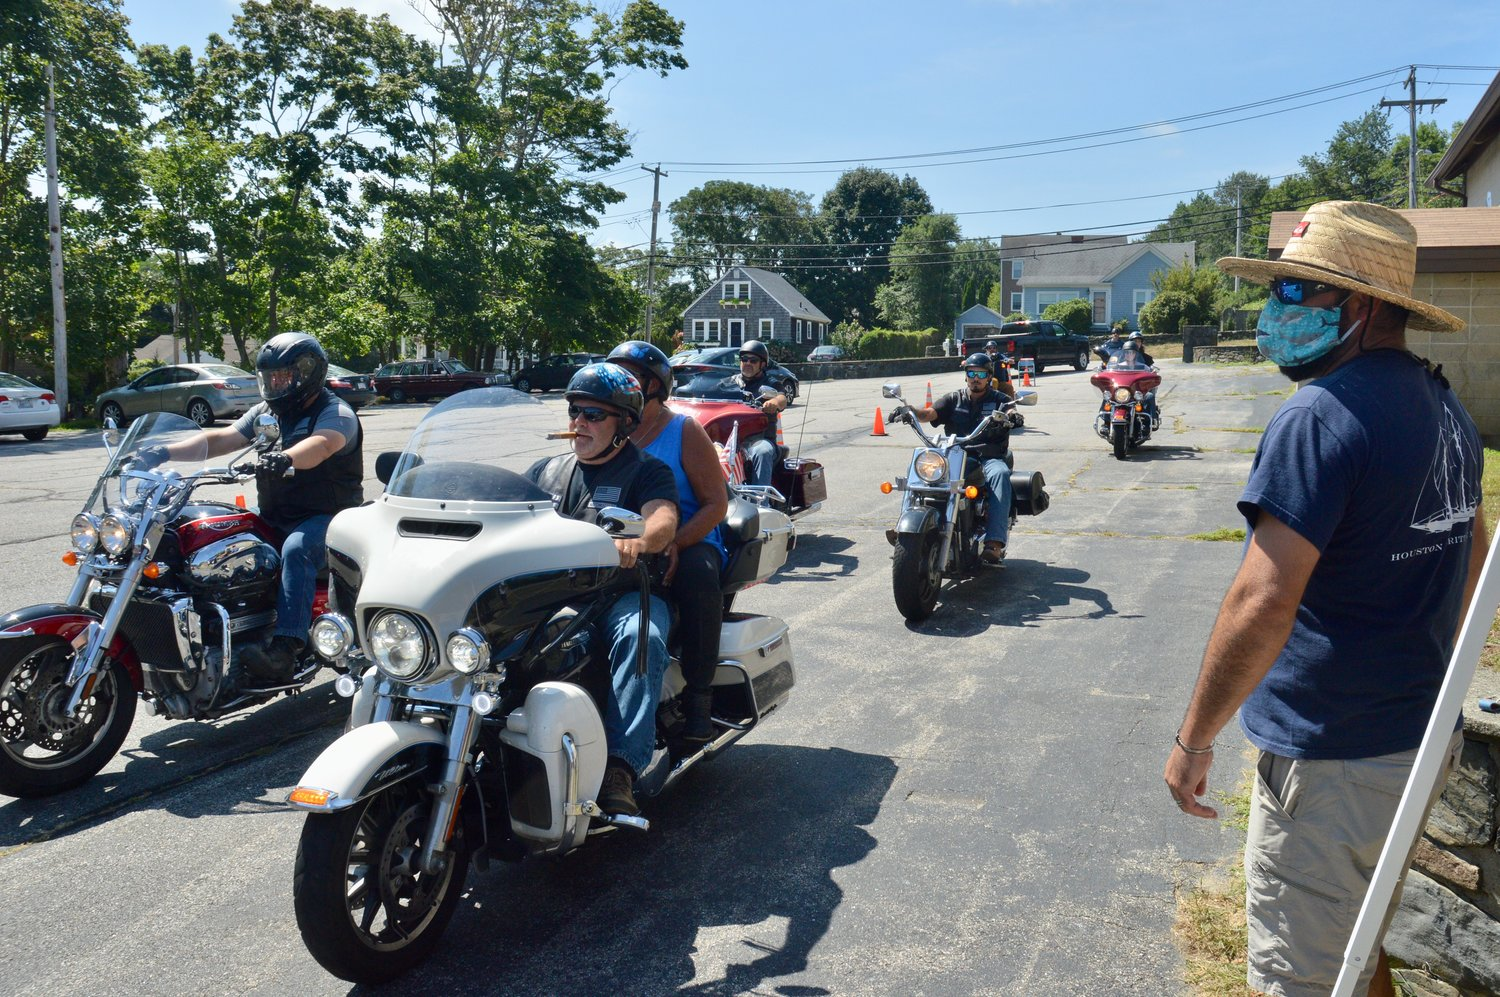 Members of the Watchkeepers Rhode Island motorcycle club arrive at St. John's Lodge No. 1, the new location for the food bank.